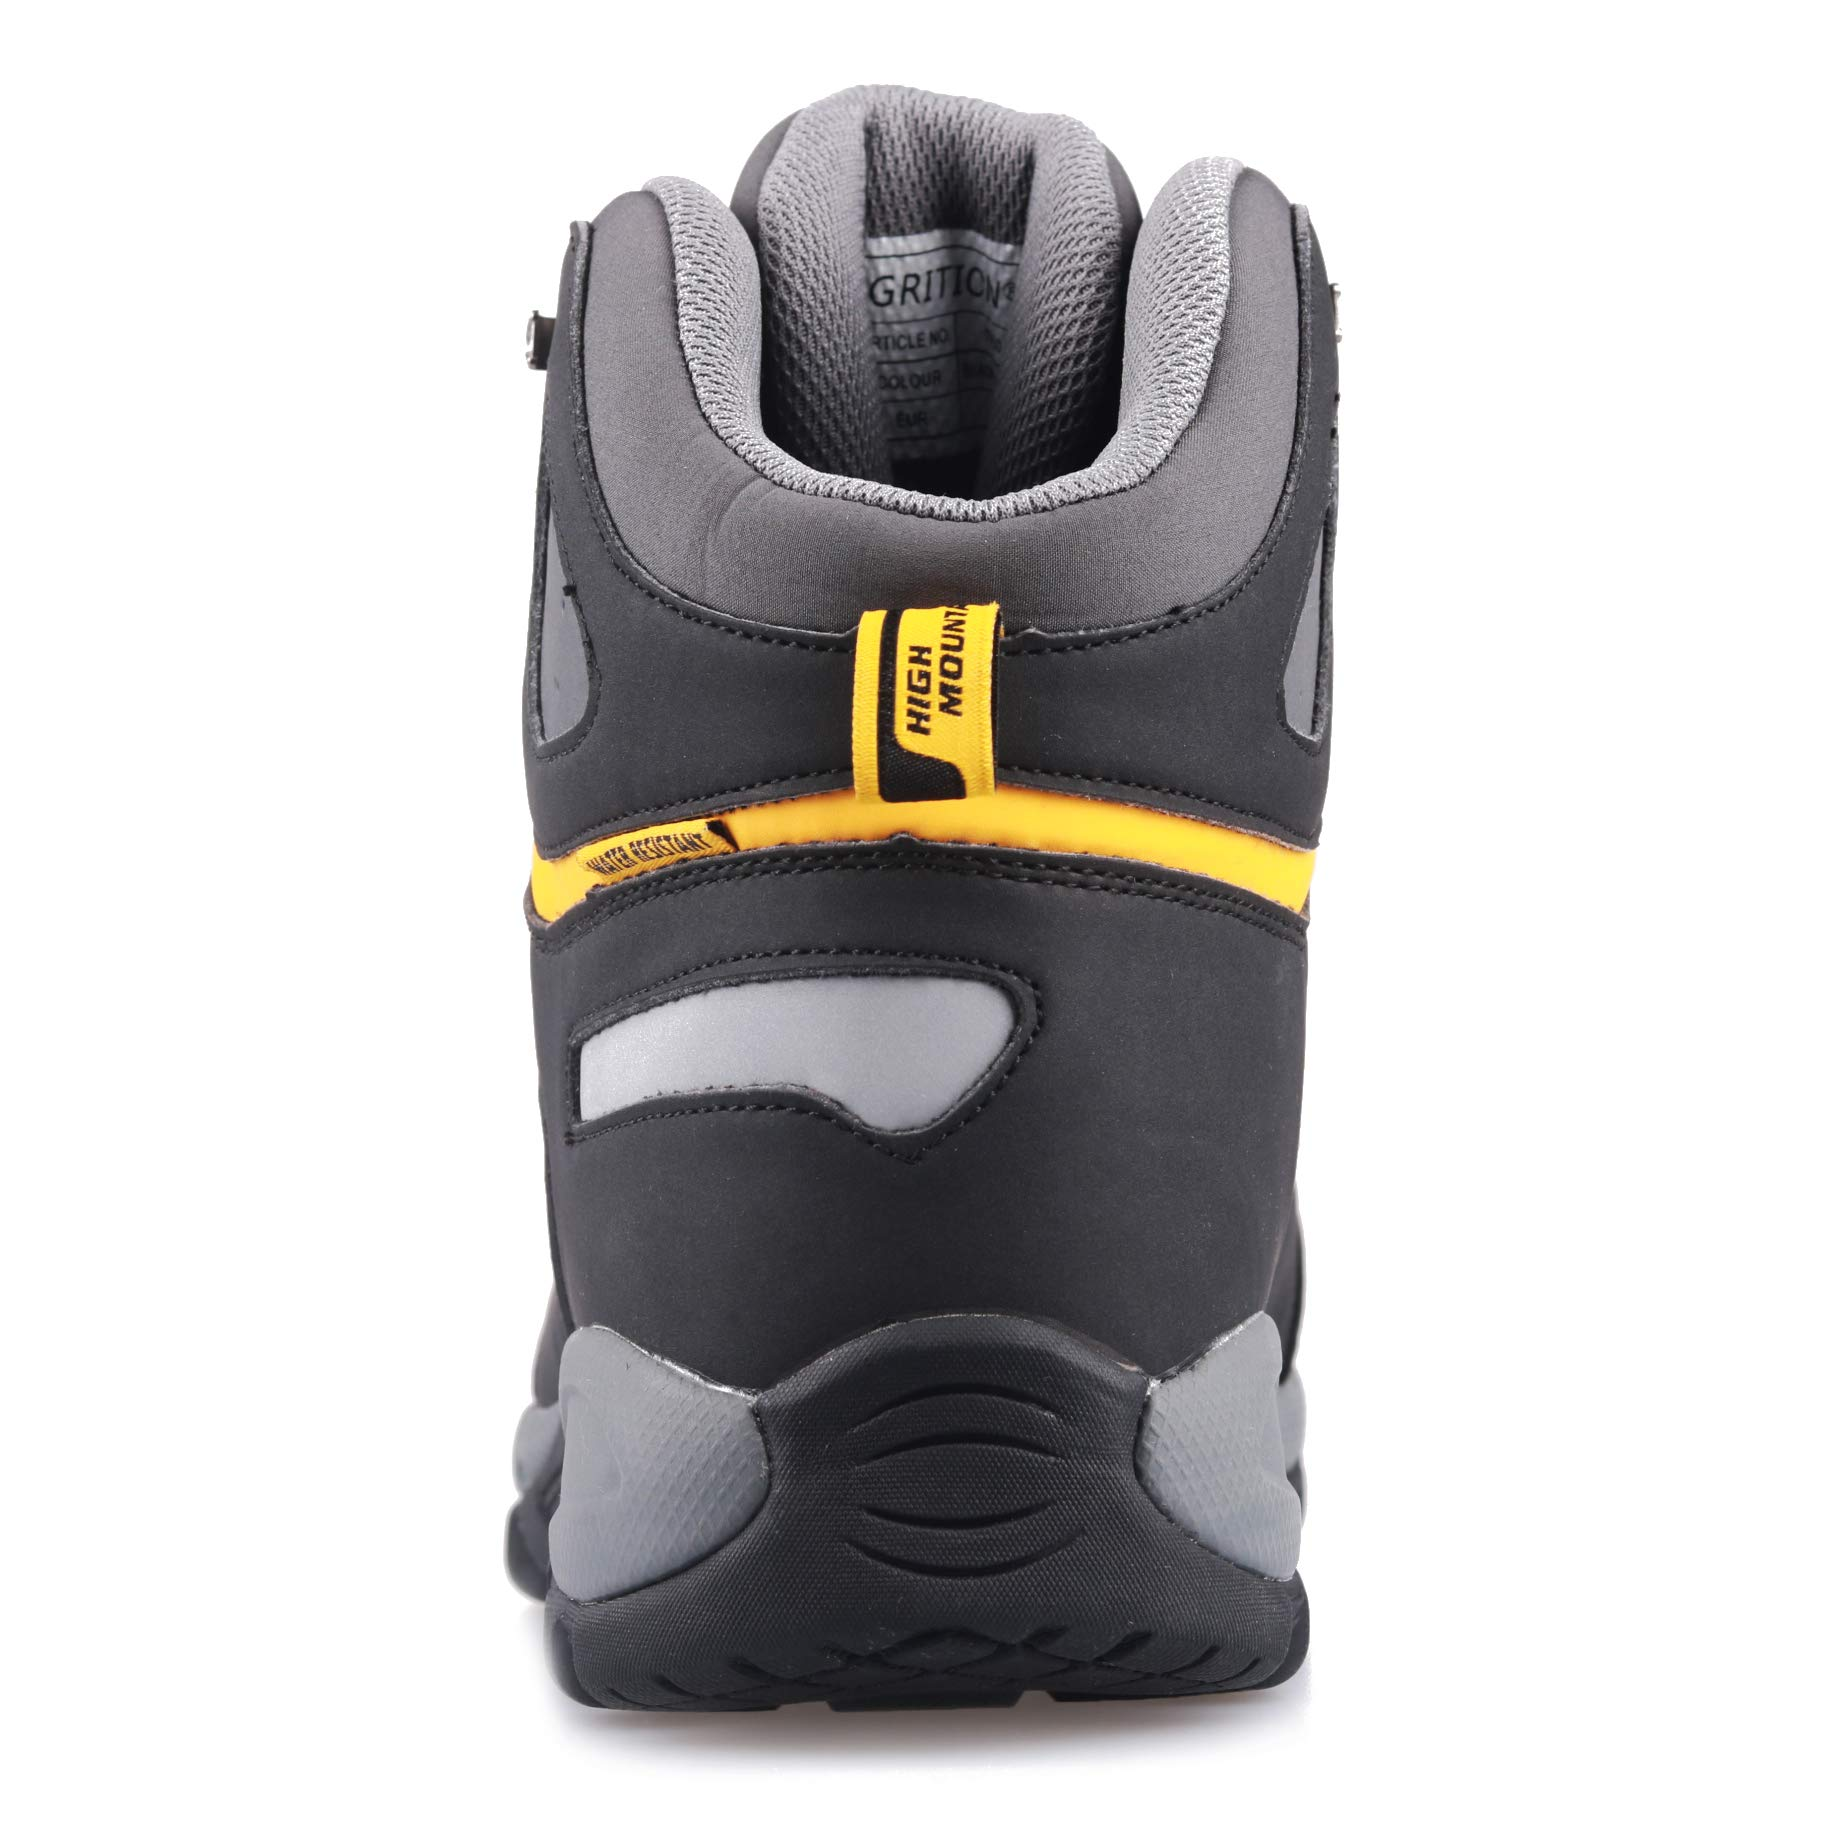 GRITION Men Hiking Boots Waterproof High Top Walking Non Slip Soft Shell Trekking Shoes Black/Yellow by GRITION (Image #4)